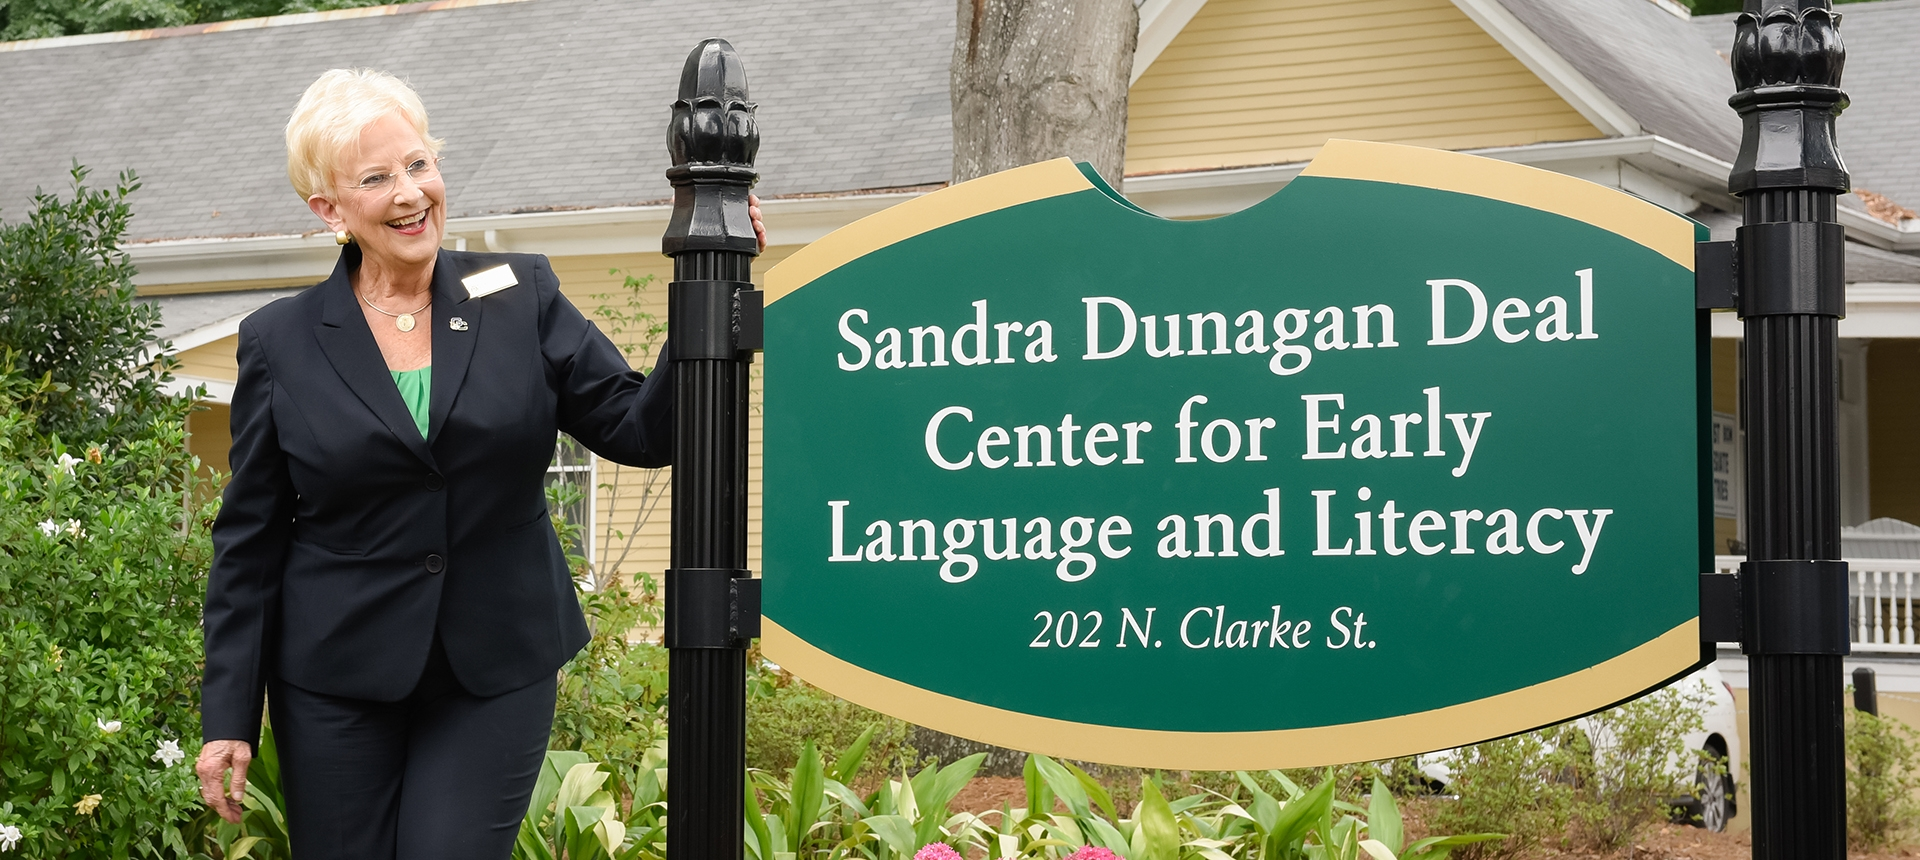 Sandra Dunagan Deal Center for Early Language and Literacy